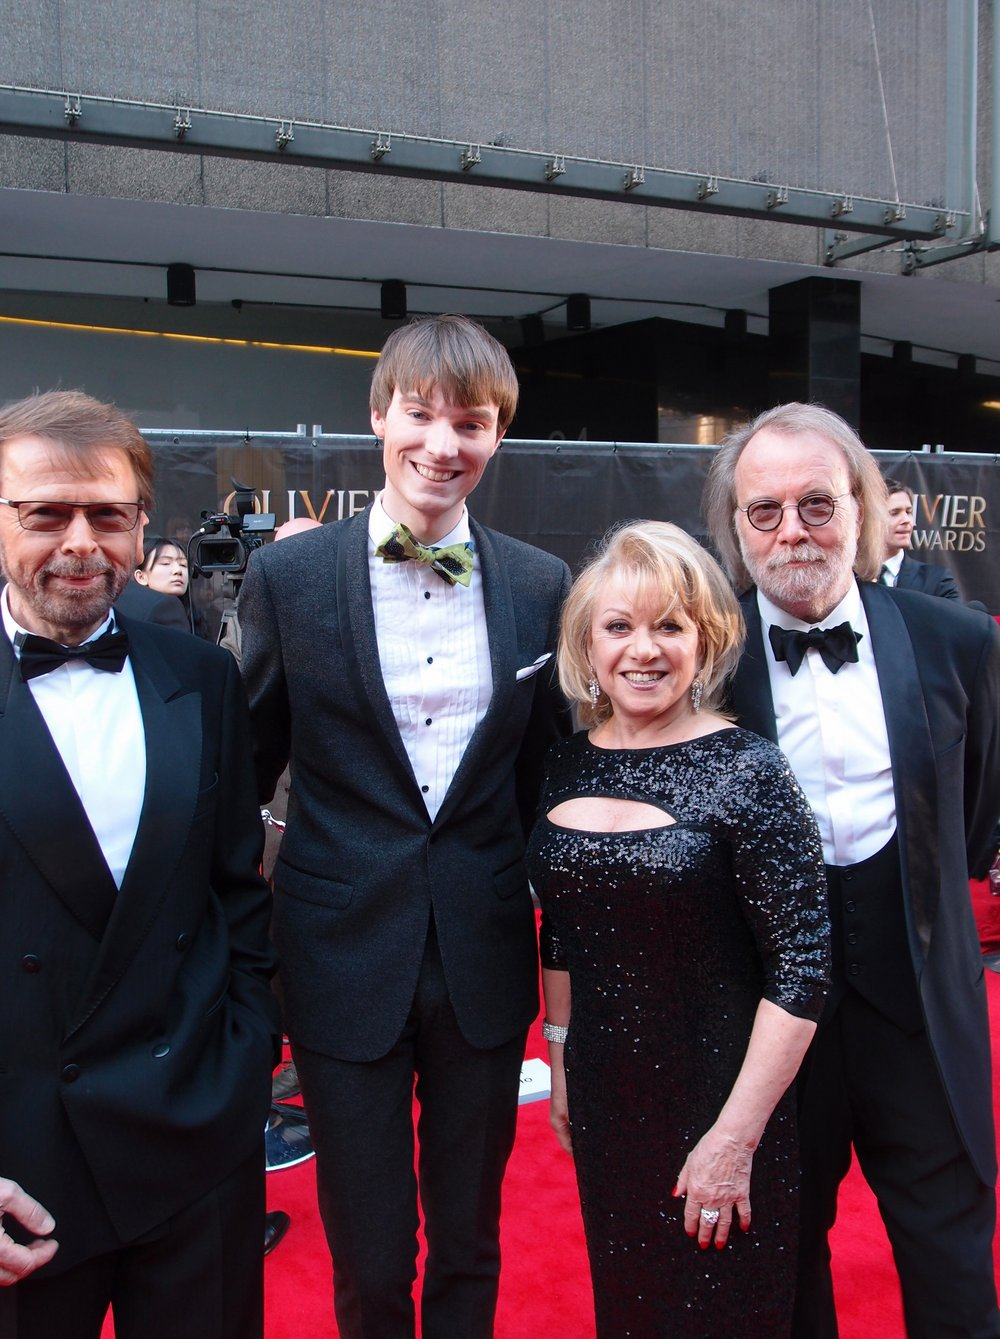 ABBA members Björn Ulvaeus and Benny Andersson with Elaine Paige and Richard Brownlie-Marshall